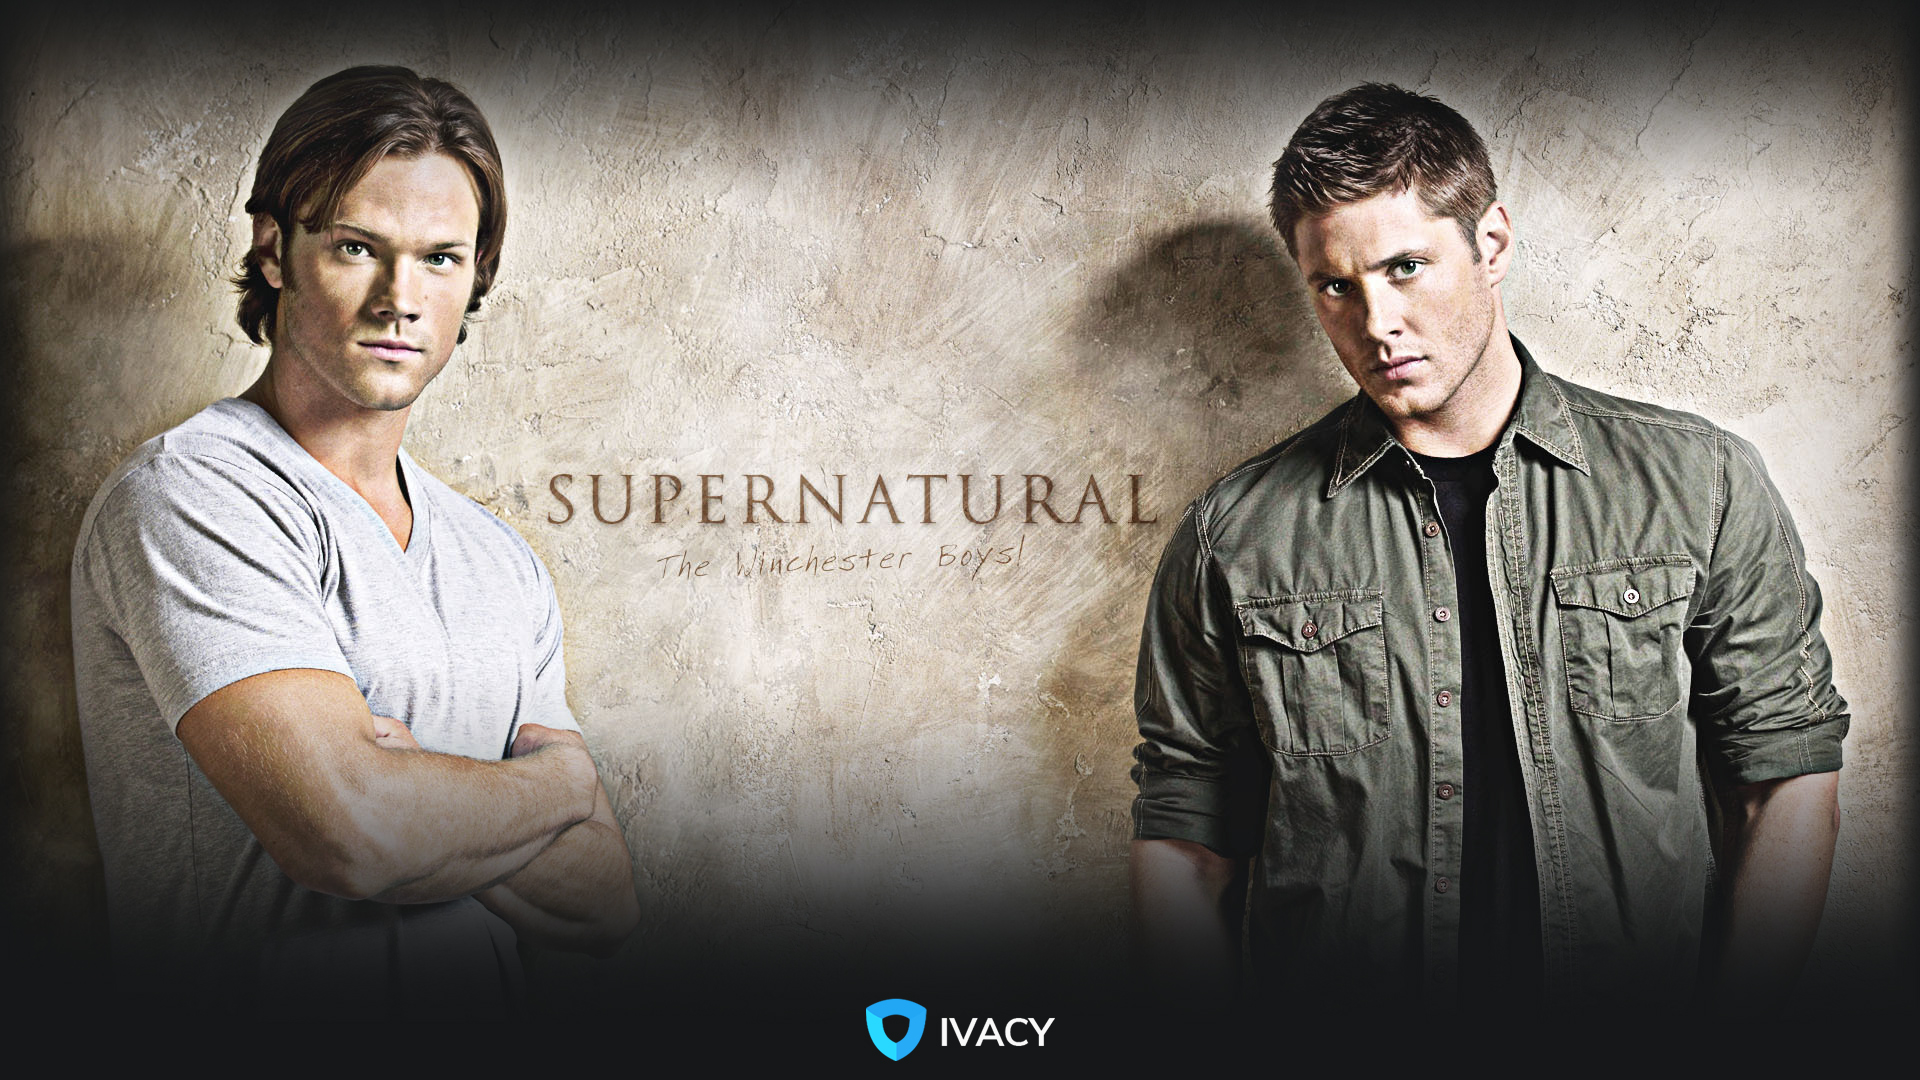 How To Watch Supernatural Season 13 Online